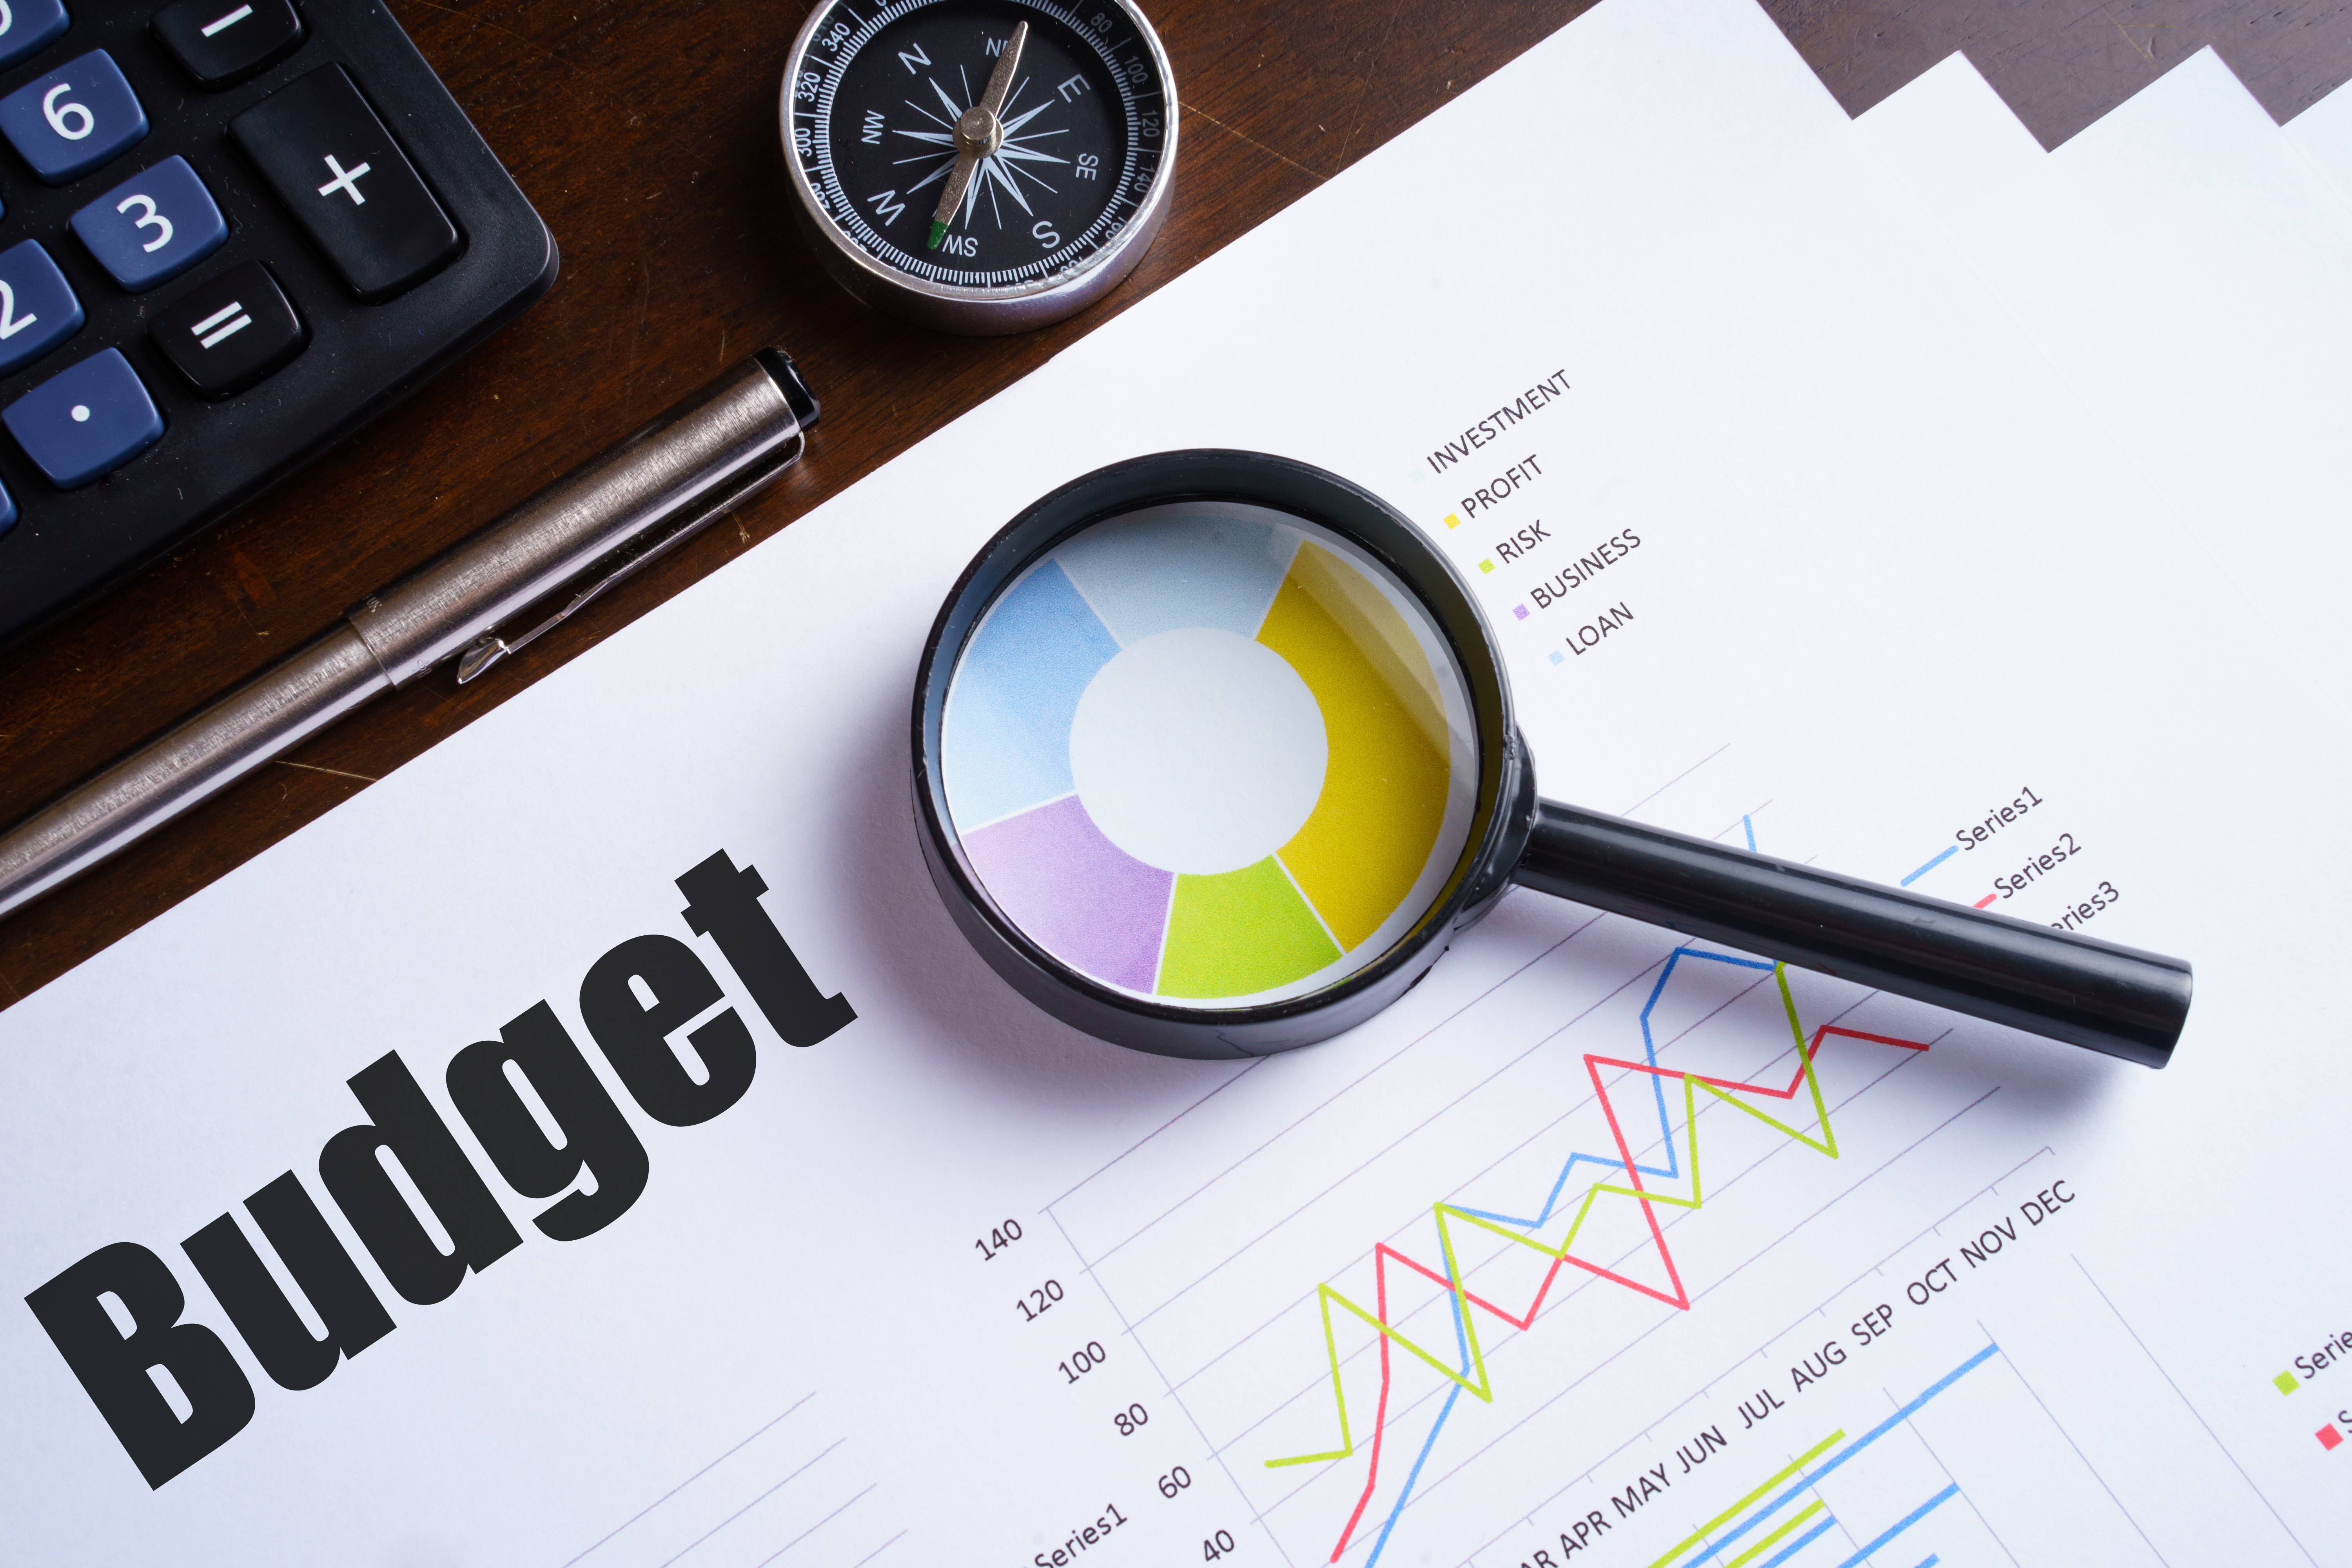 Cost Budget savings with freight management